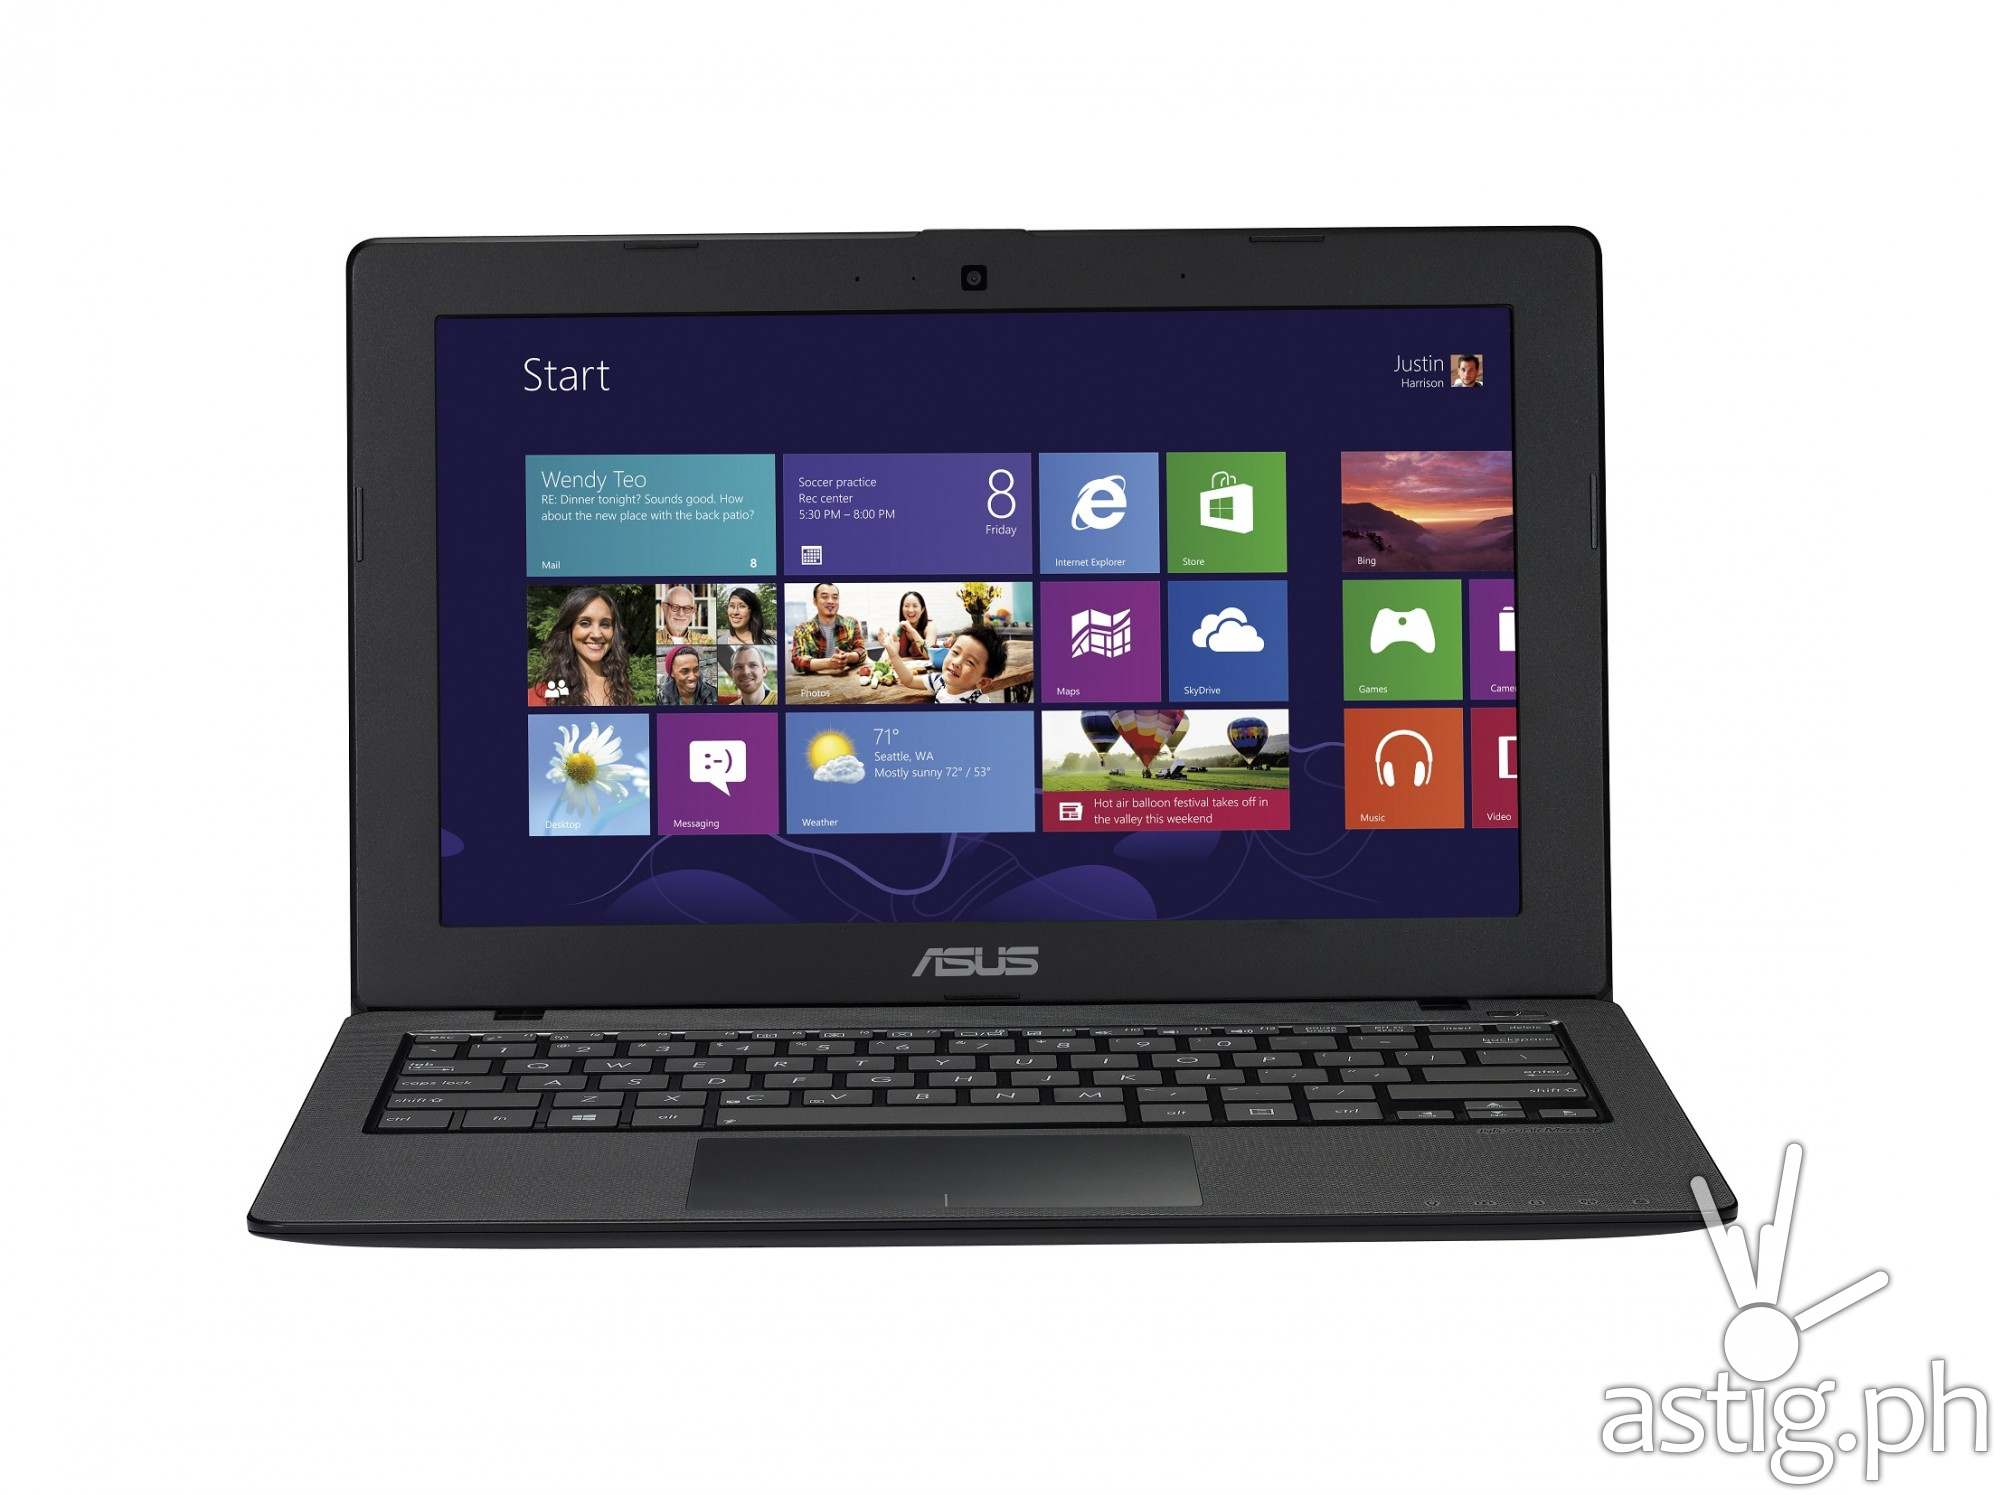 ASUS X200MA Windows 8.1 laptop